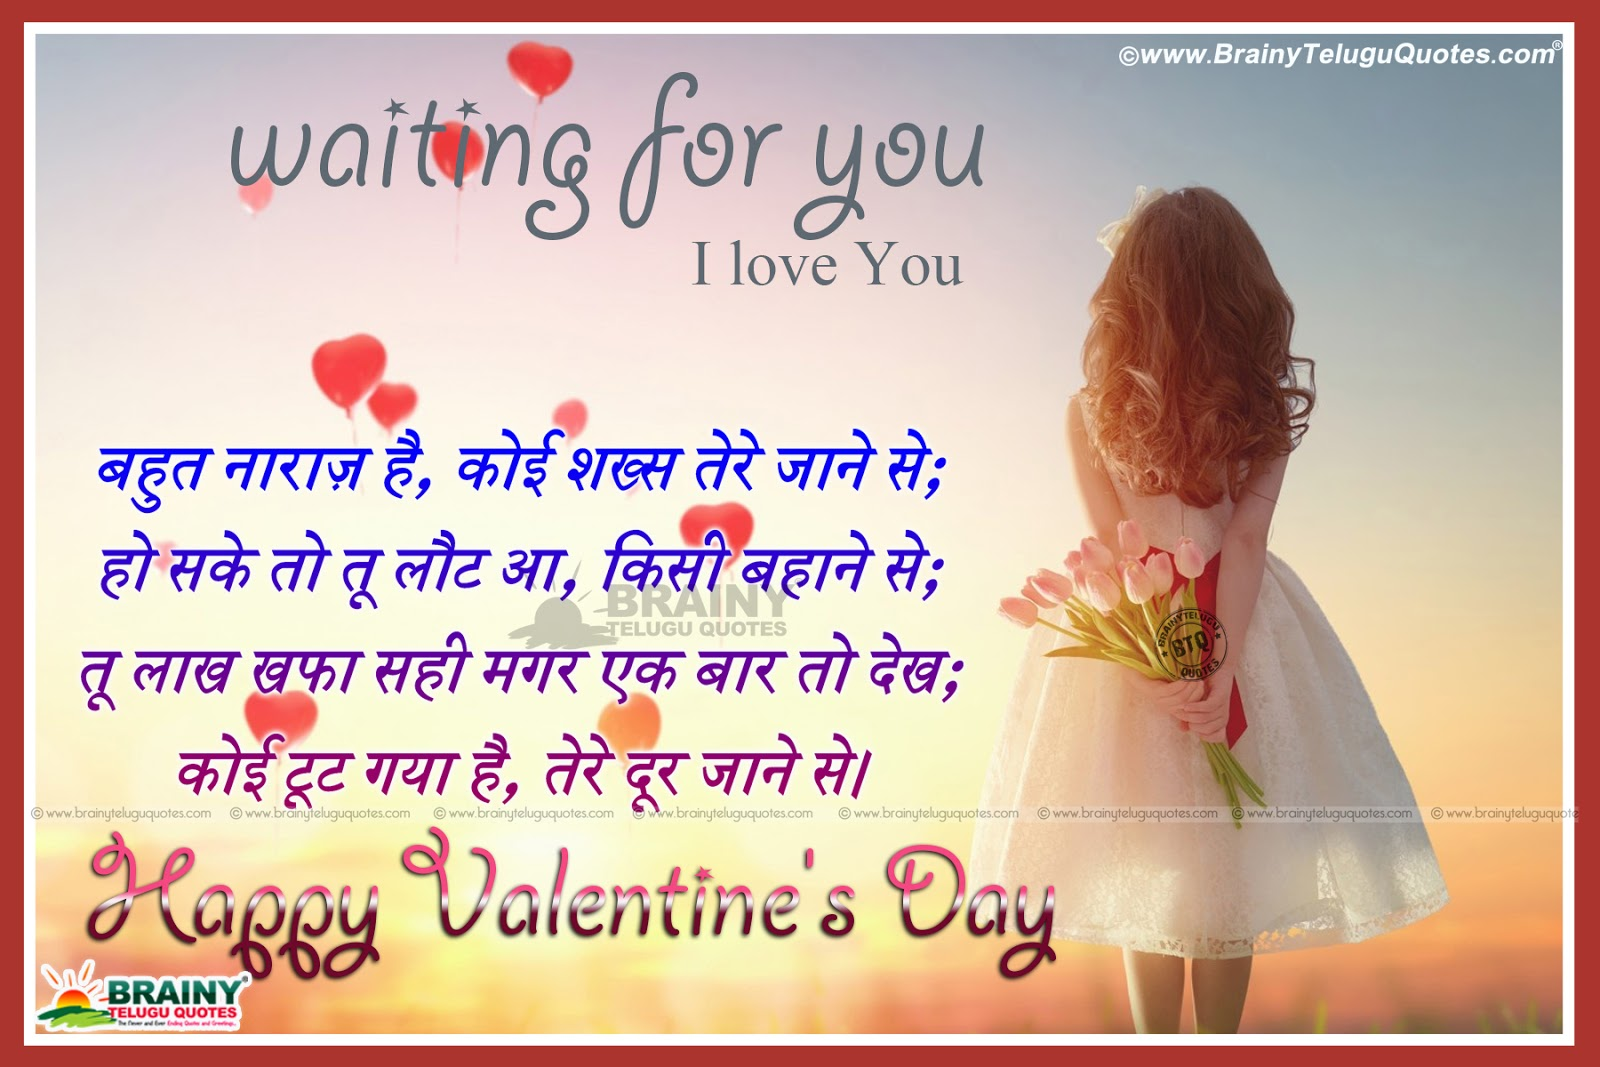 True Love Shayari And Happy Valentines Day Hindi Quotes Messages Greetings Collection Brainyteluguquotes Comtelugu Quotes English Quotes Hindi Quotes Tamil Quotes Greetings